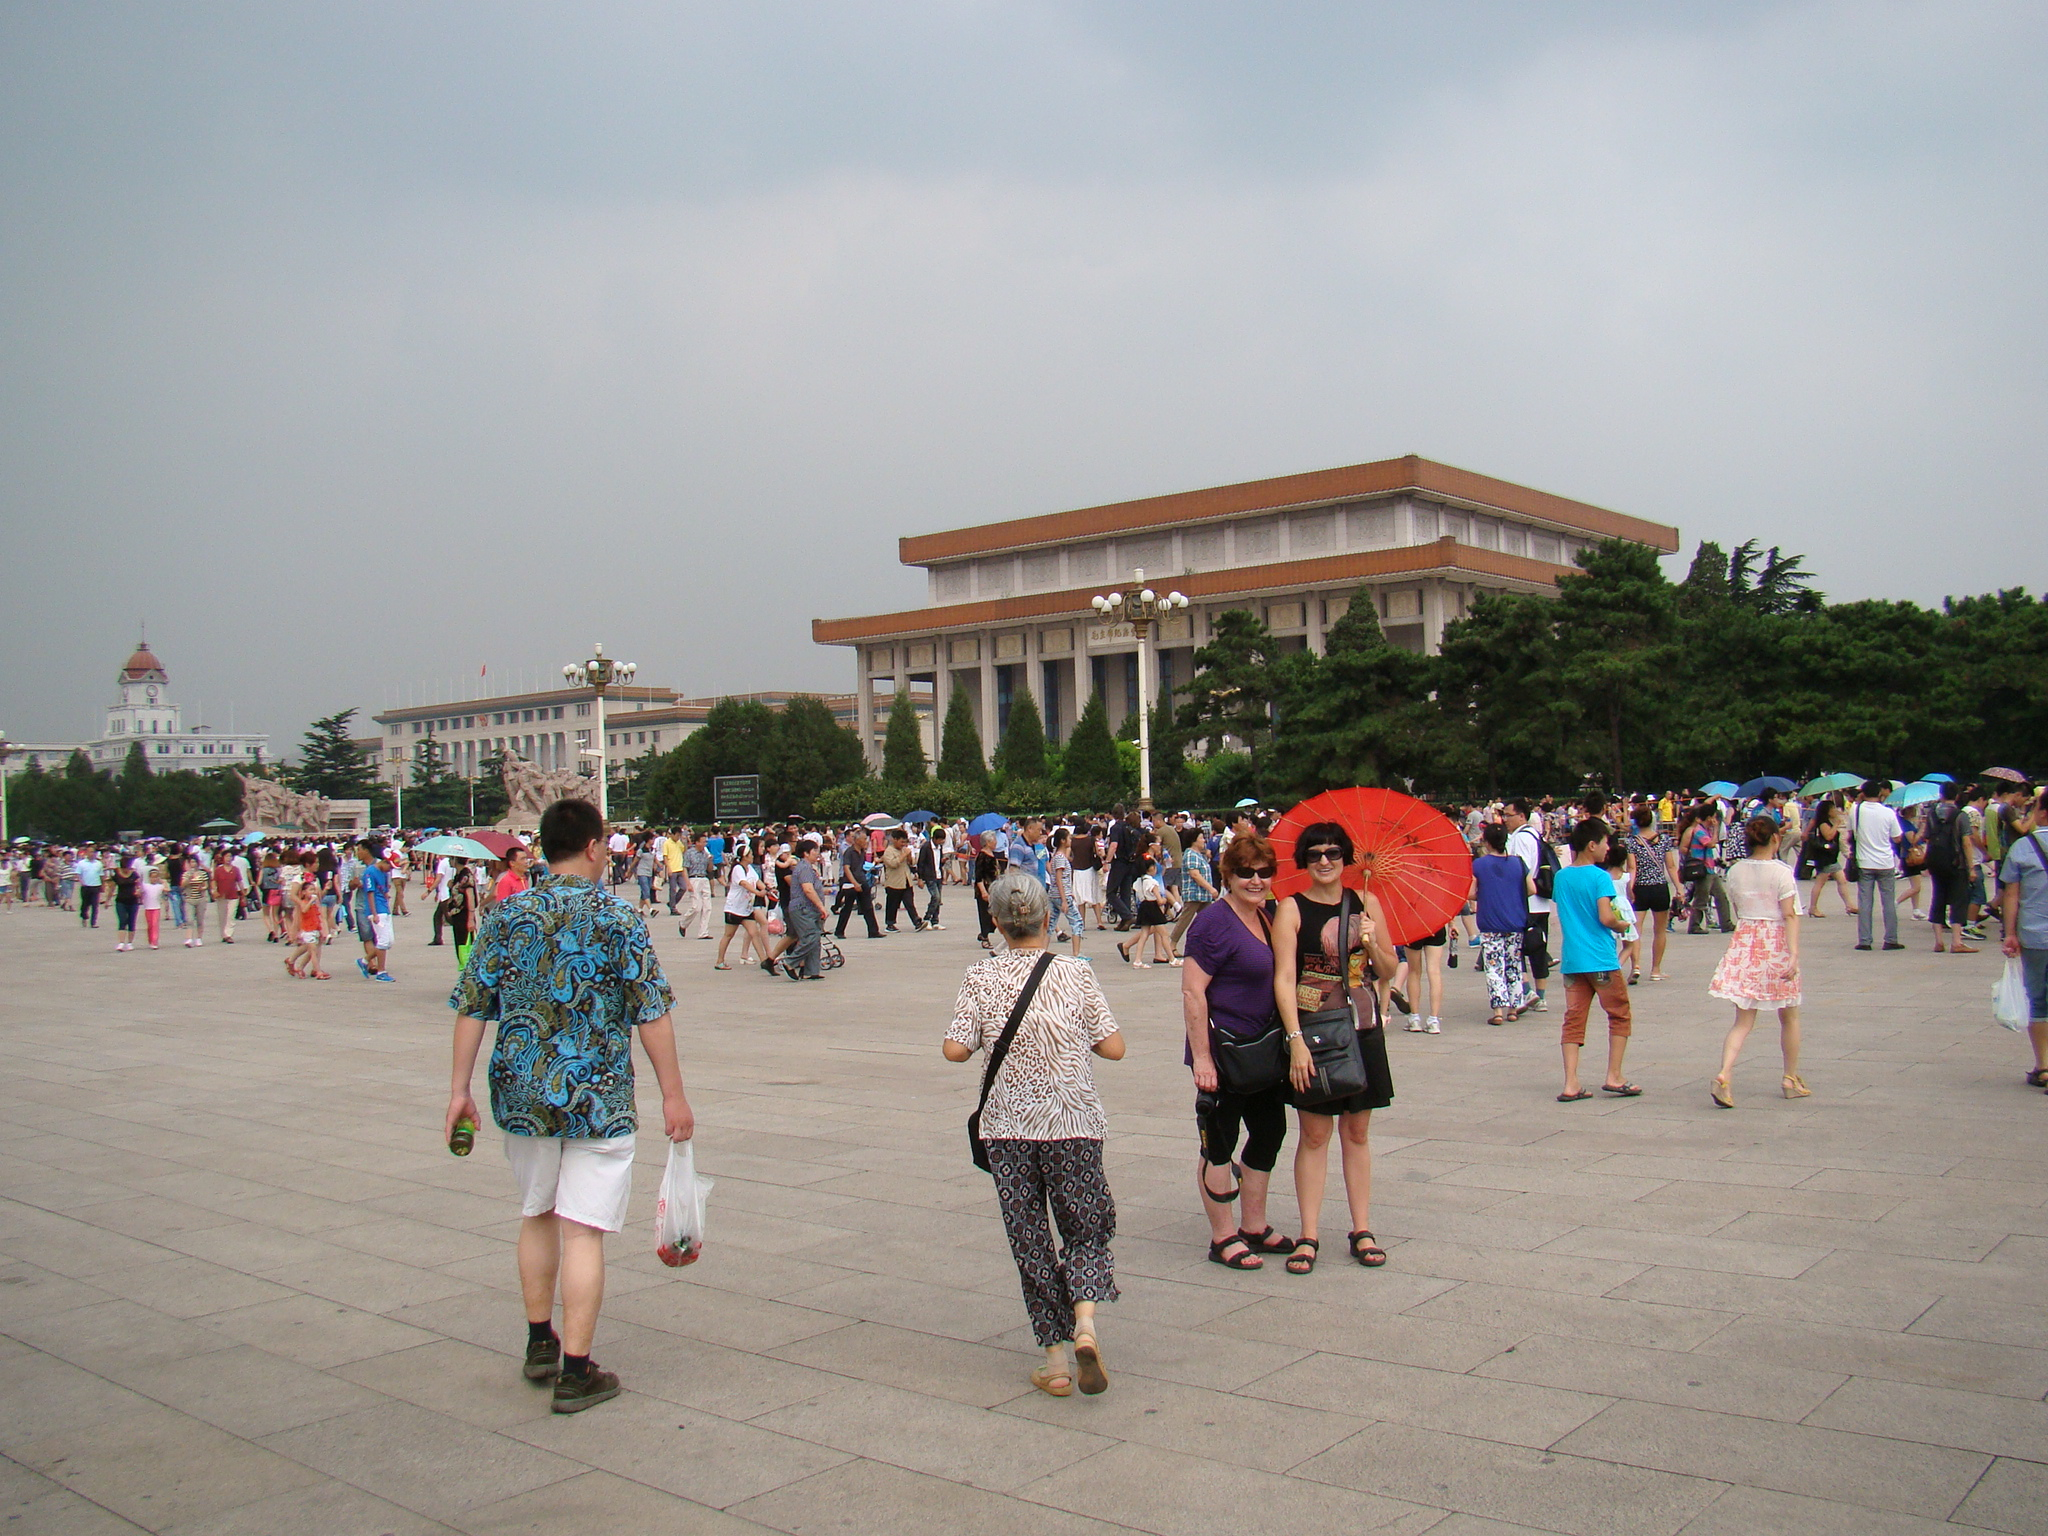 Me and mom stansing on Tiananmen Square with the mausoleum behind us.